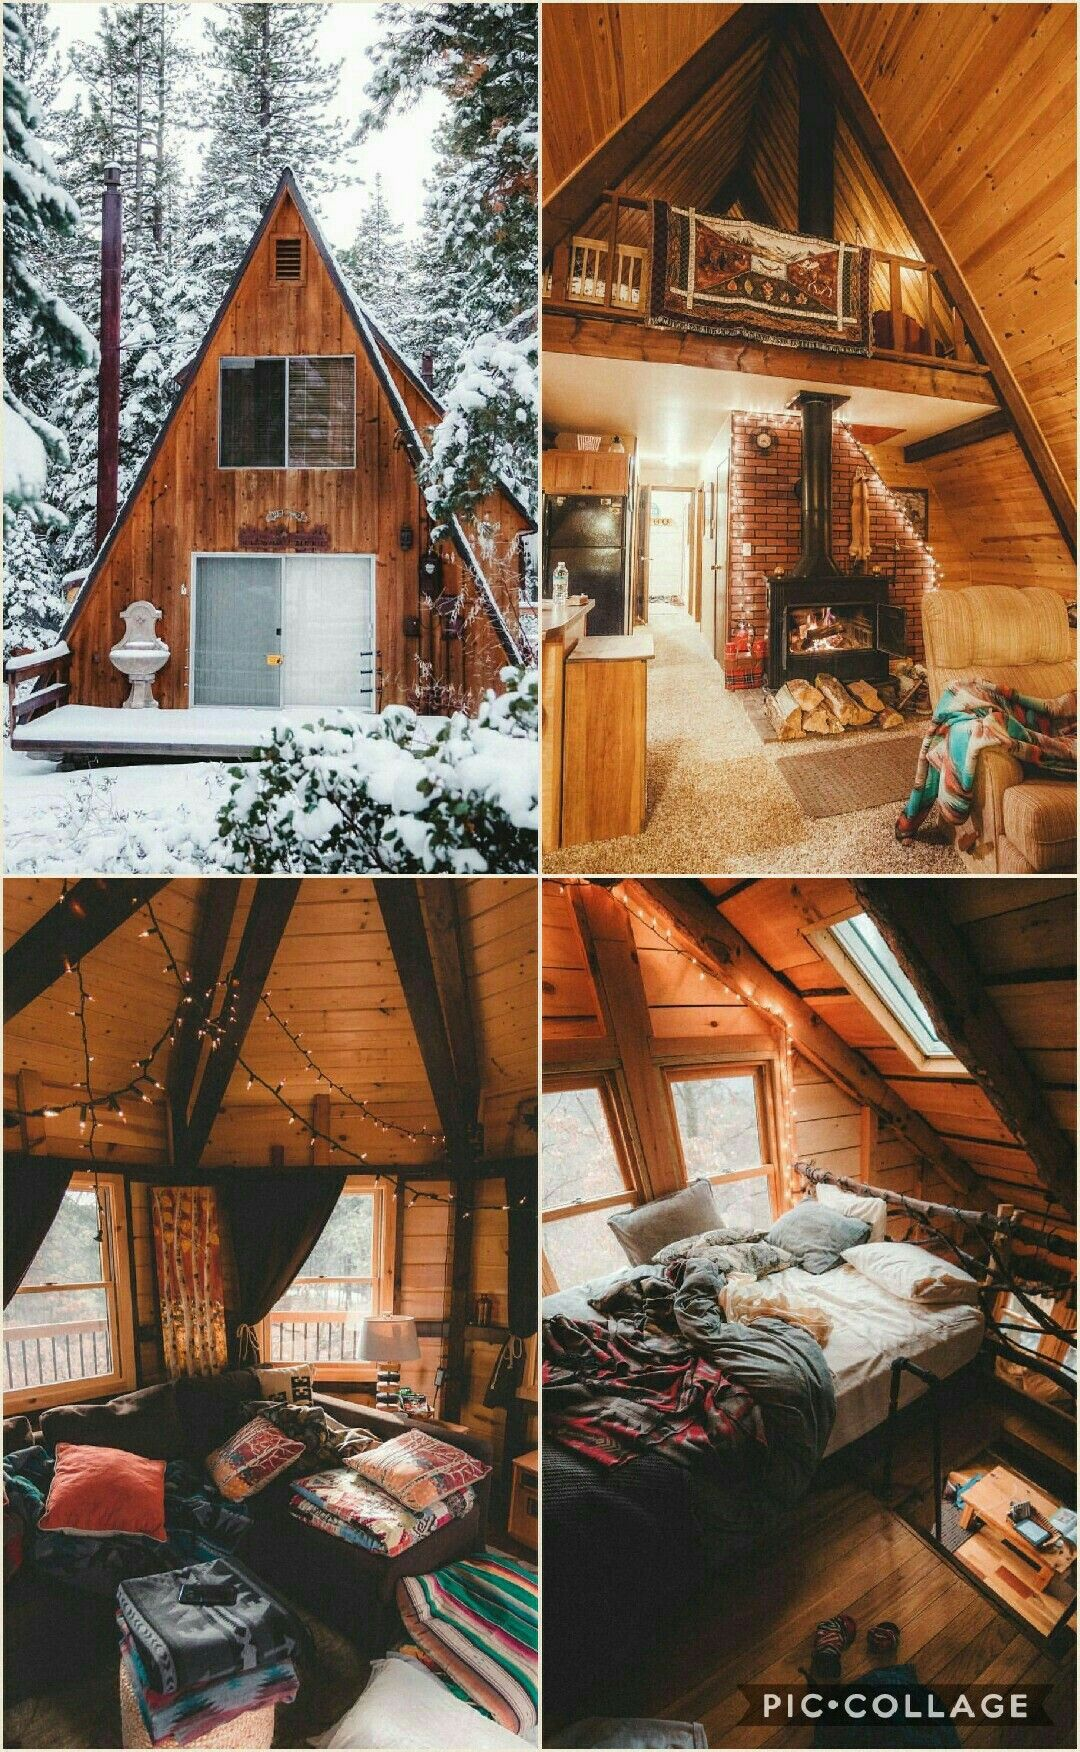 we'd probably have to hunt deer and collect berries for food...but i would love to live like this